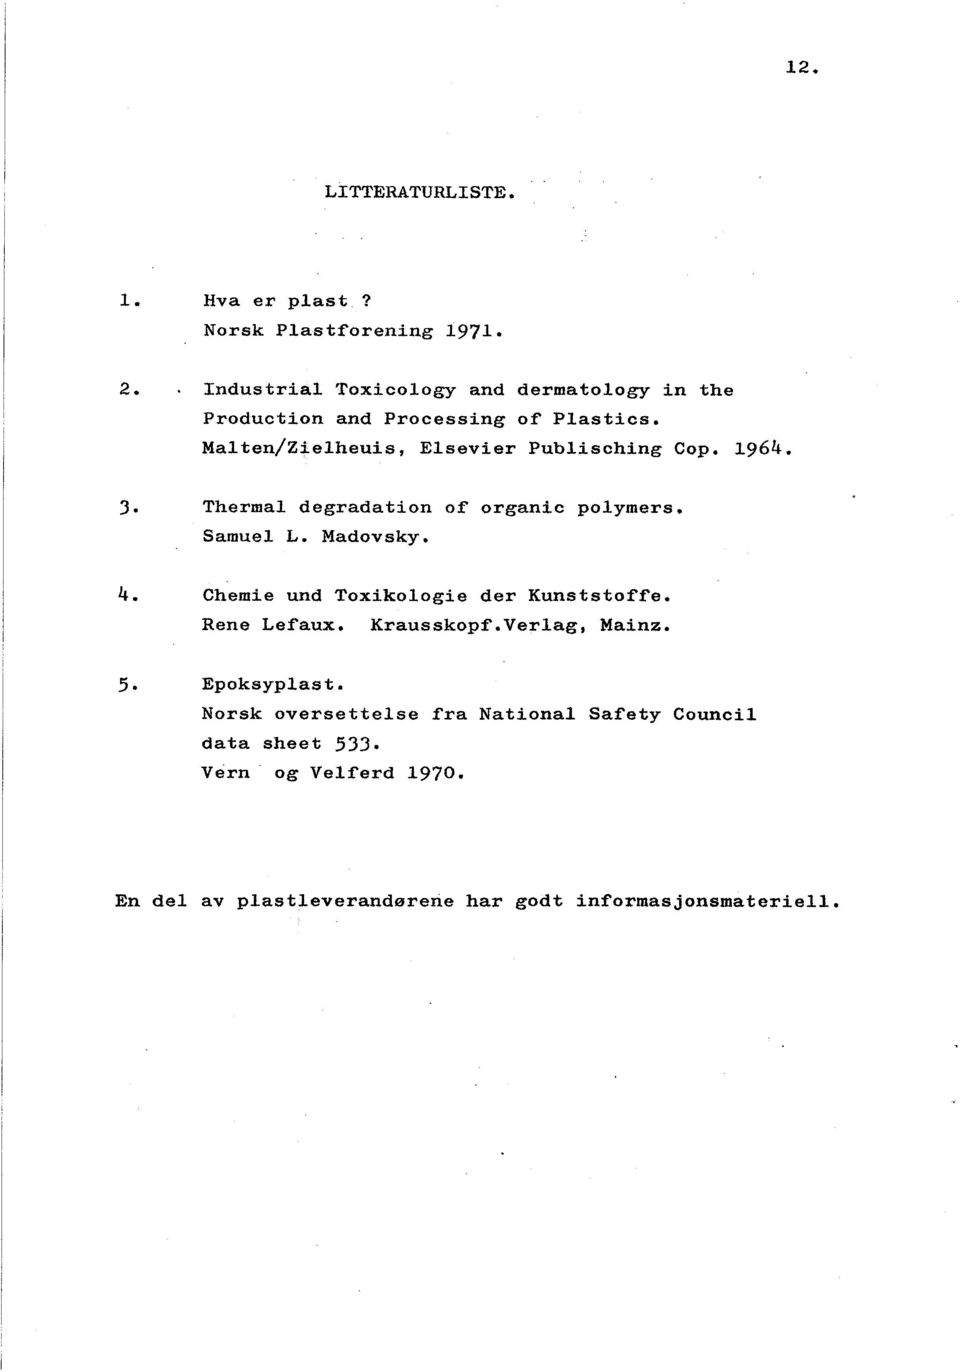 1964. 3. Thermal degrada tion of organic polymers. Samuel L. Madovsky. 4. Chemie und Toxikologie der Kunststof~e. Rene Lefaux.